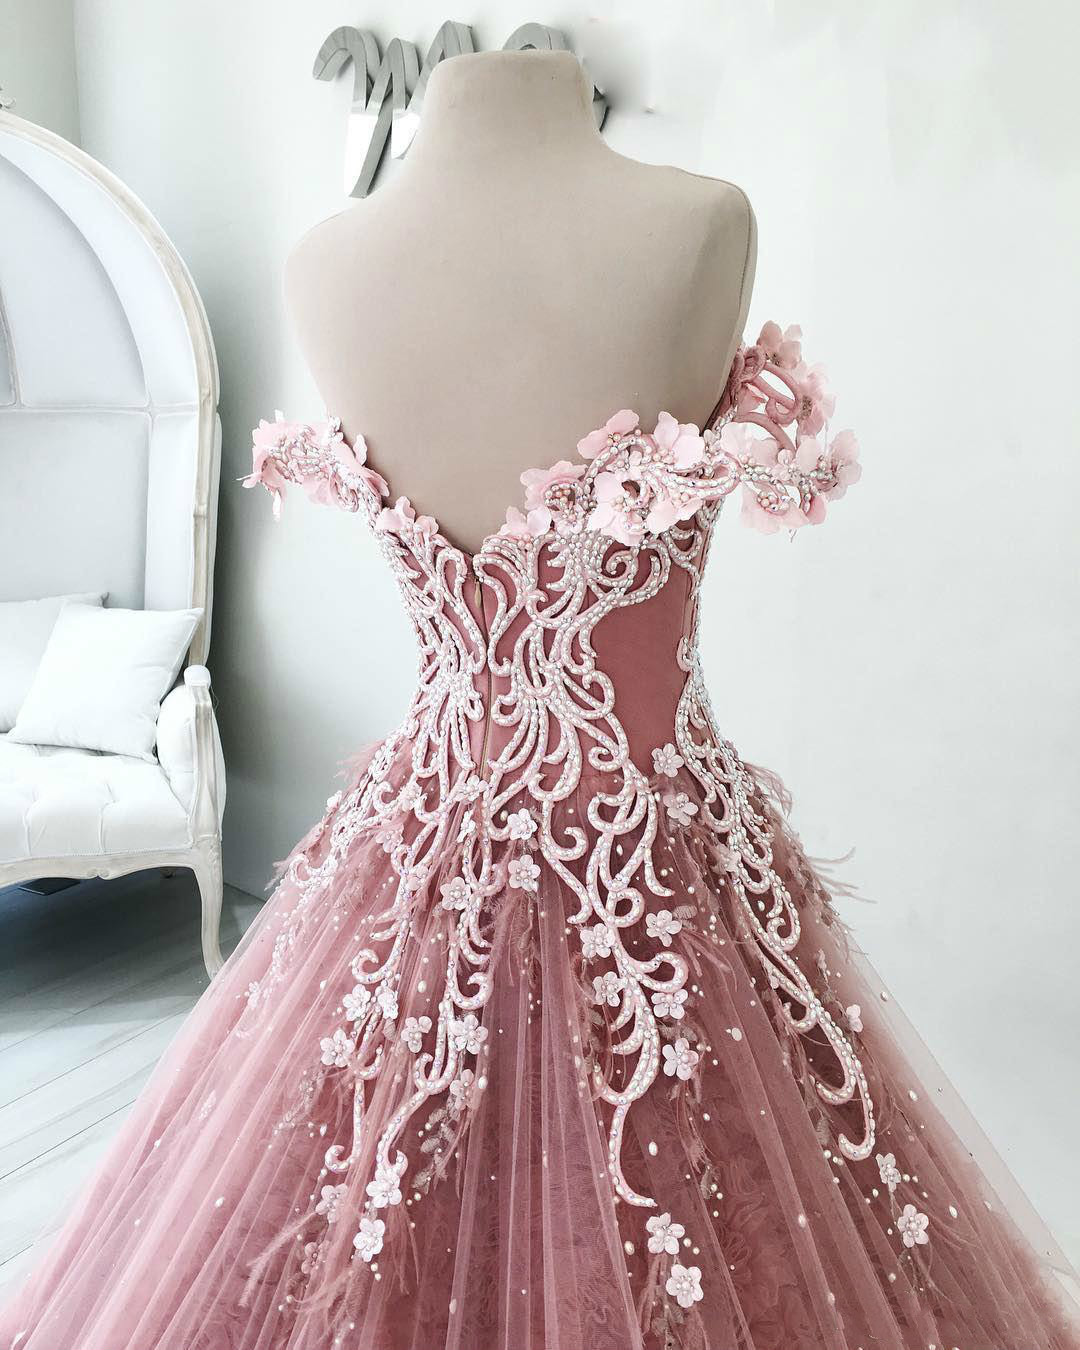 Image 3 - BGW 2241ht Butterfly Flowers Appliques Ball Gown Masquerade Quinceanera Dresses Off Shoulder Backless Floor Length Pageant GownsQuinceanera Dresses   -